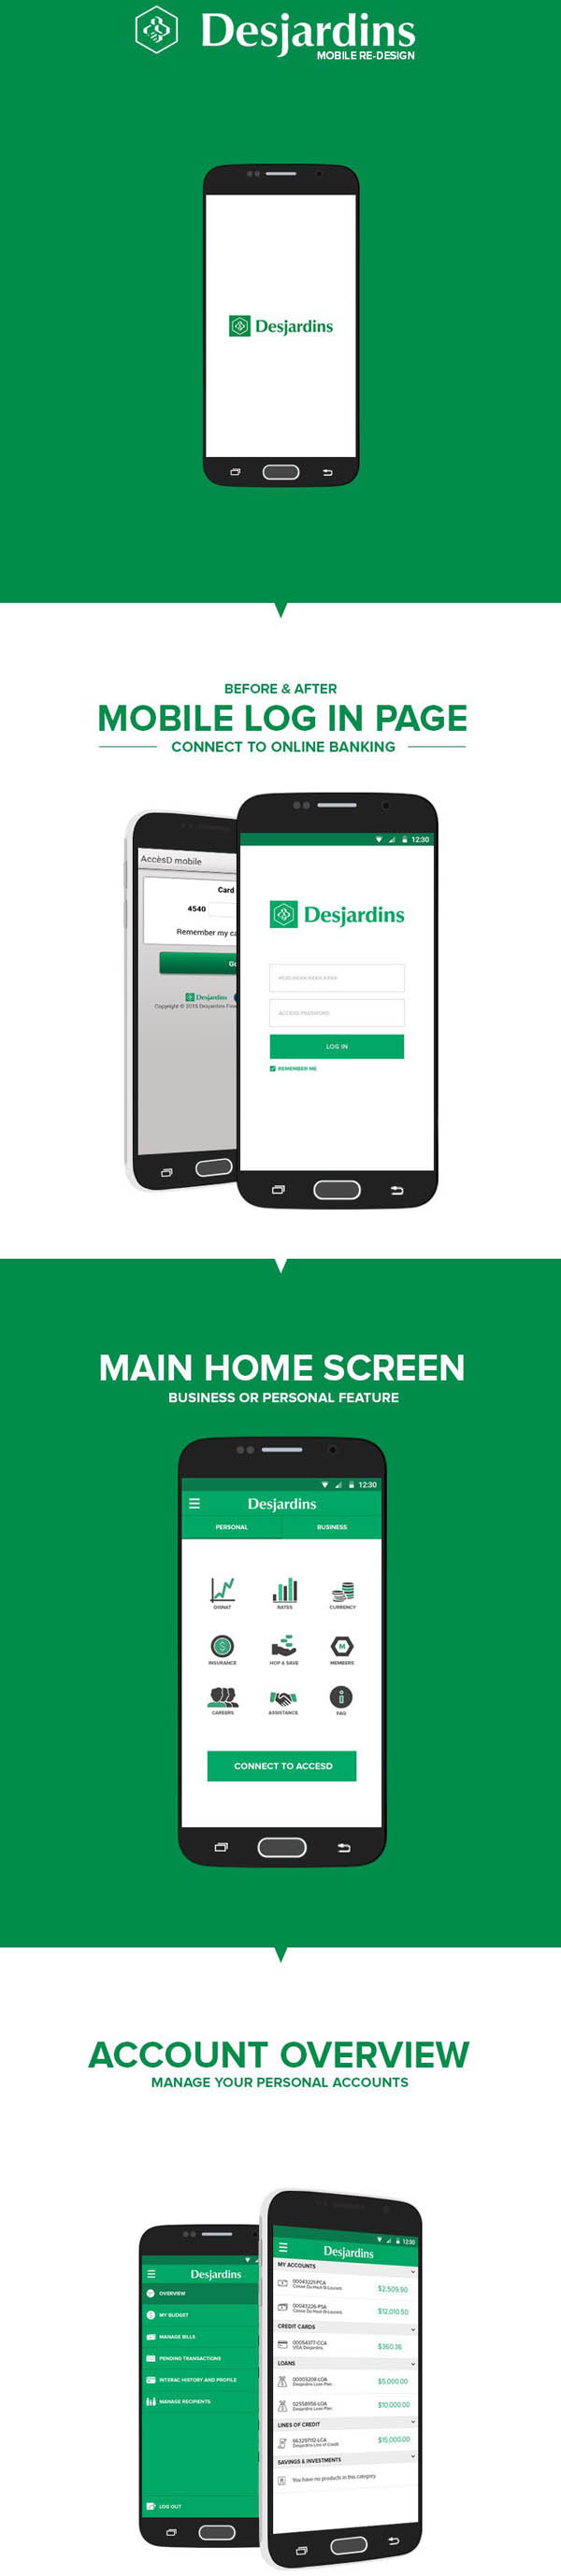 Desjardins-Mobile-Re-Design